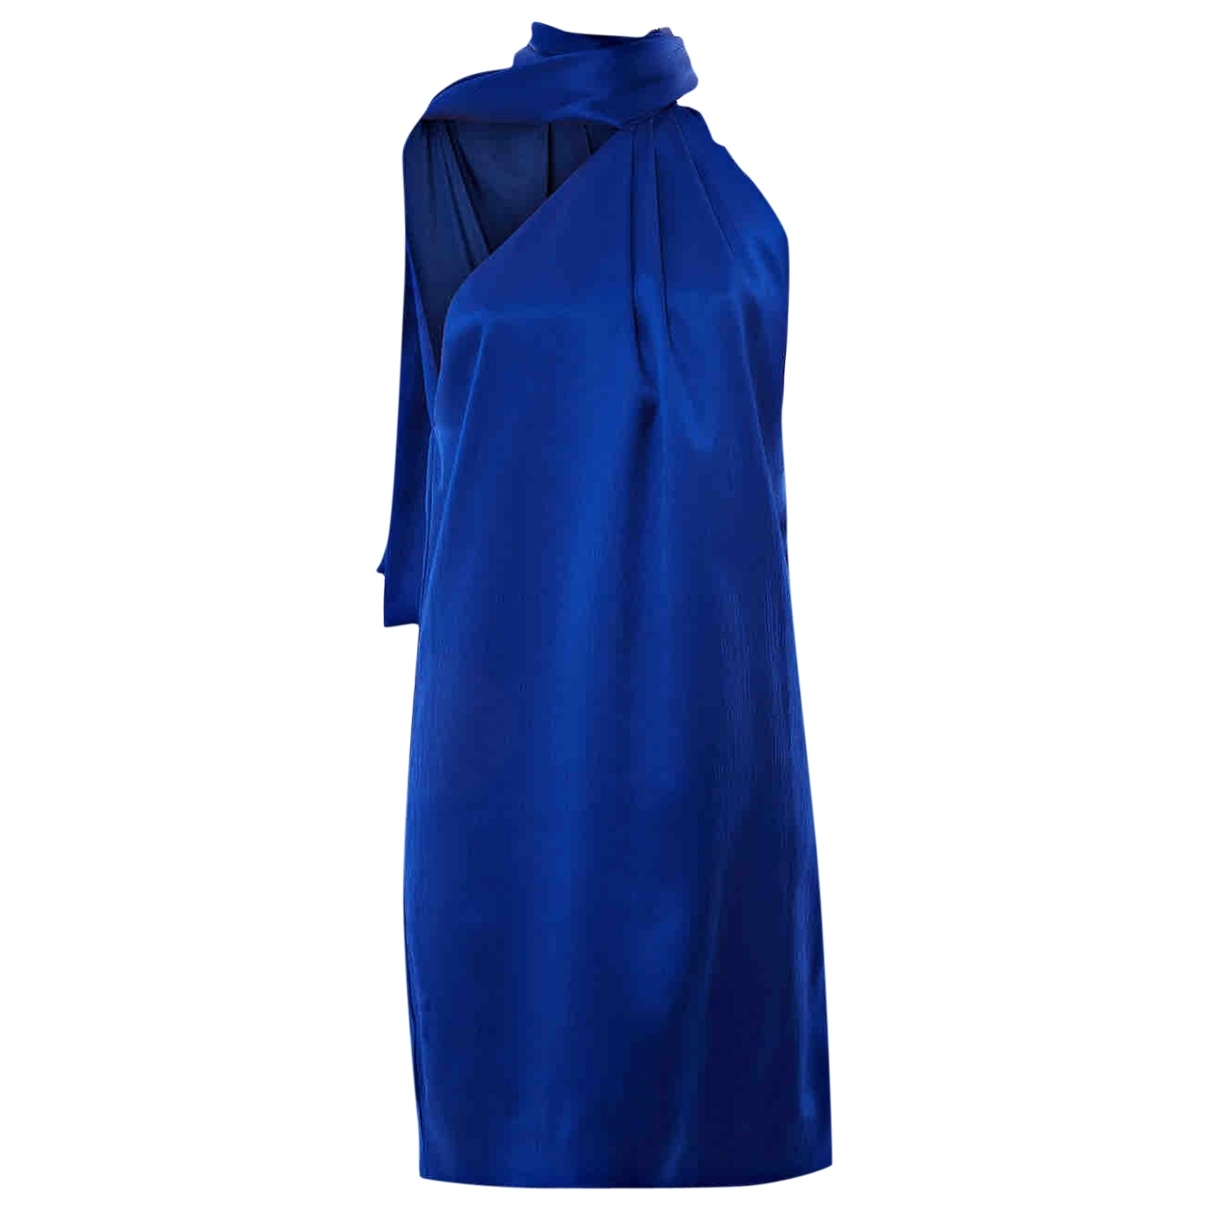 Genny \N Blue Silk dress for Women 38 IT